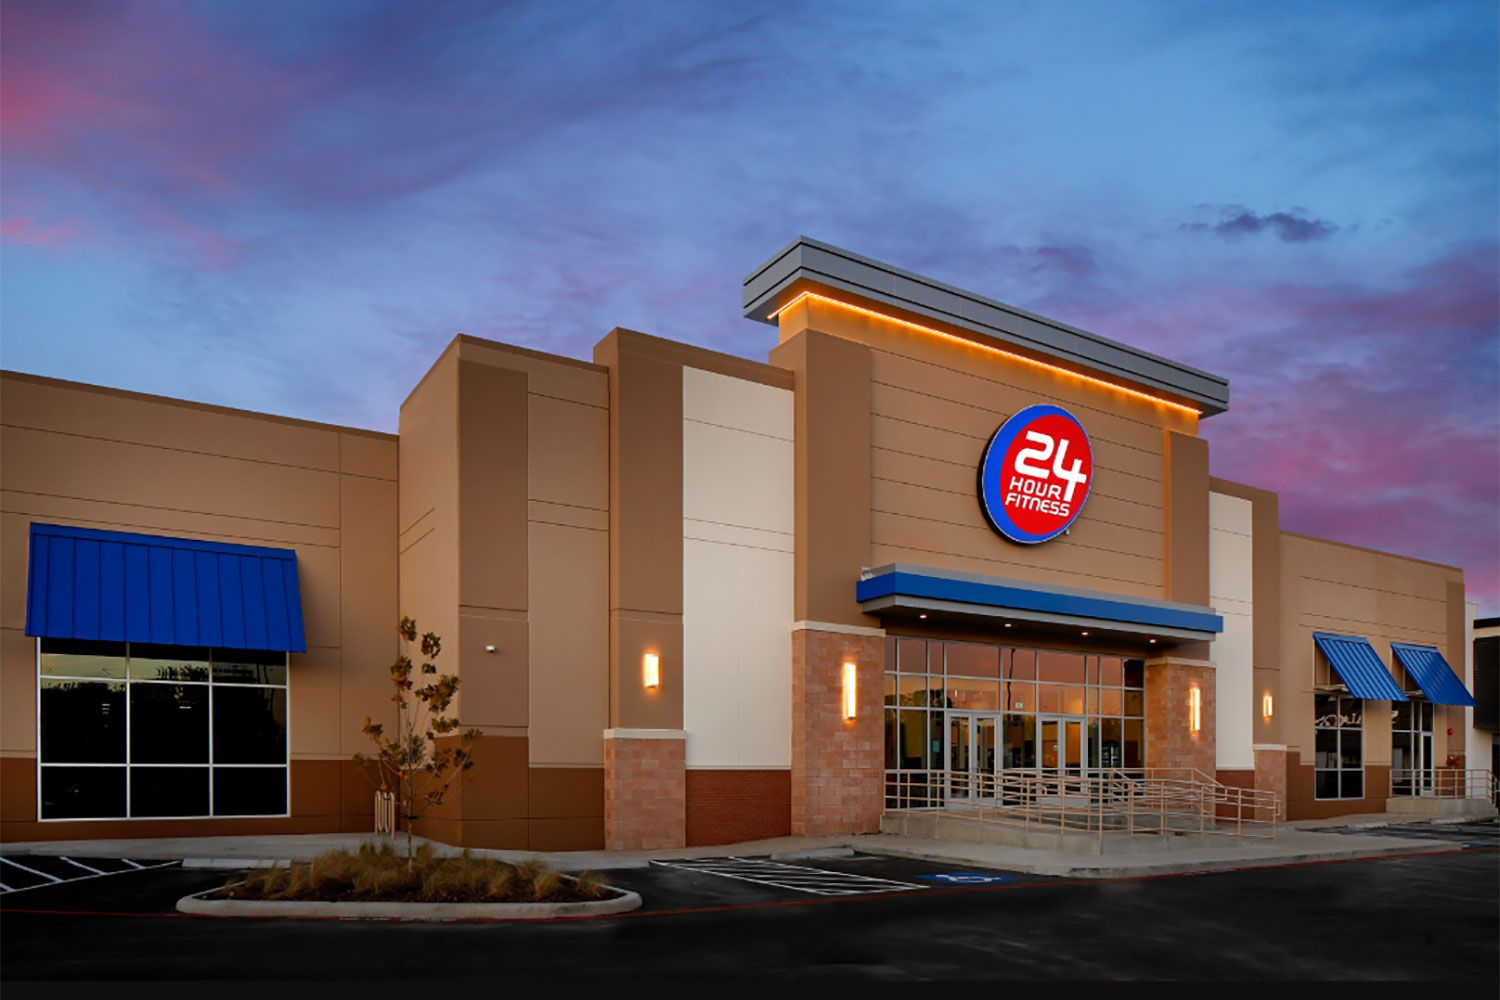 24 Hour Fitness Announces New Chicago Locations 24 Hour Fitness California Fitness 24 Hour Fitness Gyms